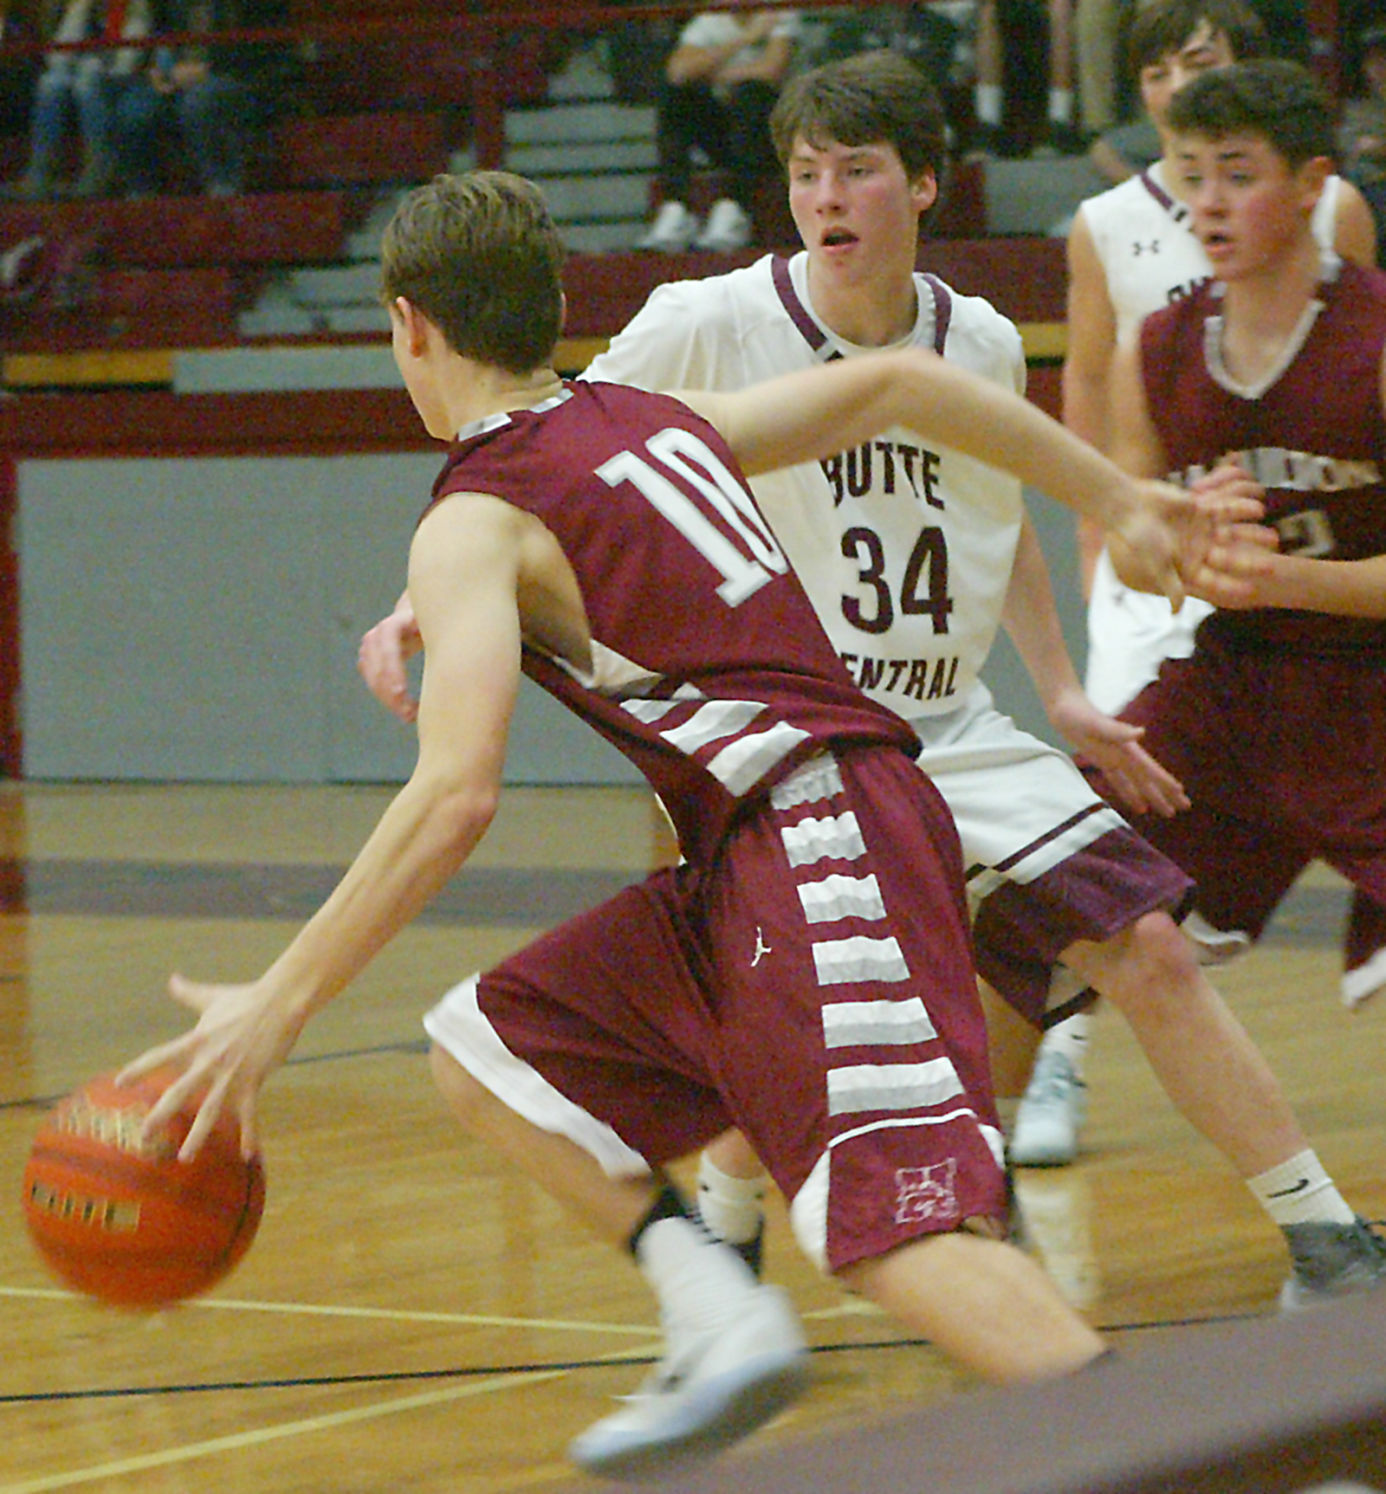 It just means more: Butte-Butte Central rivalry game is a ...